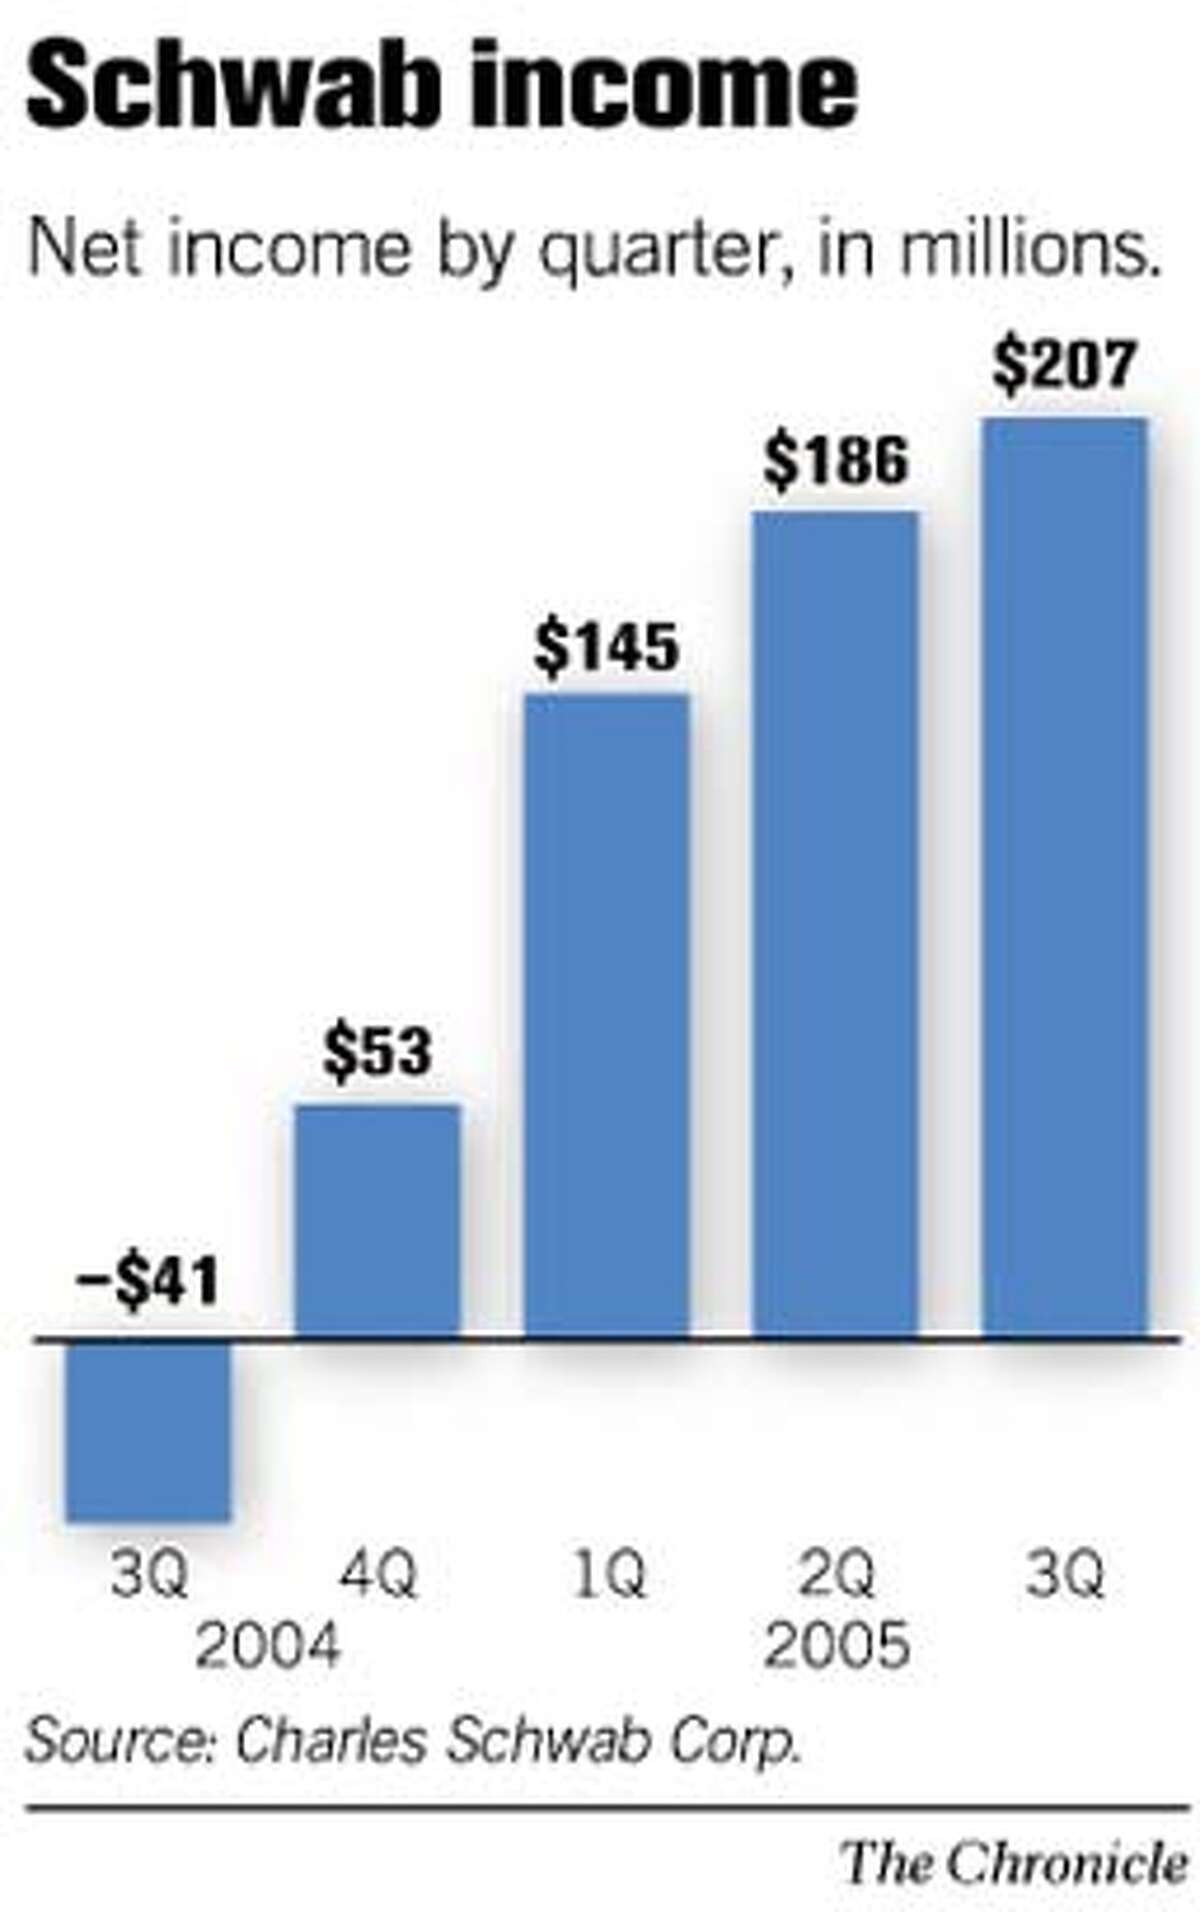 Schwab Income. Chronicle Graphic